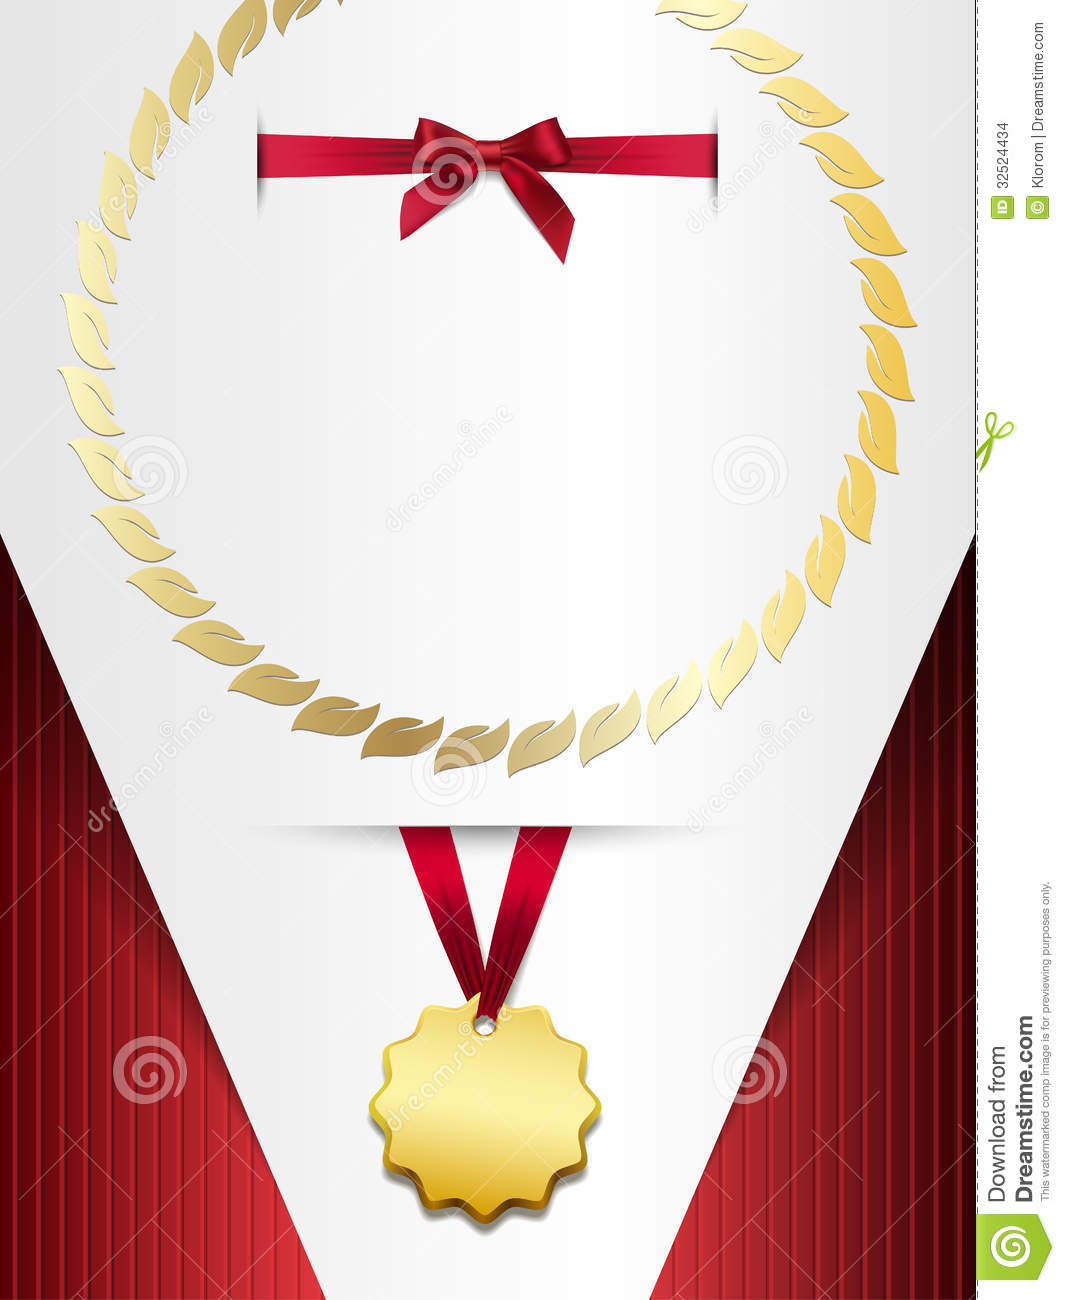 Medal and certificate clipart clip free stock Medals and certificates clipart 9 » Clipart Station clip free stock